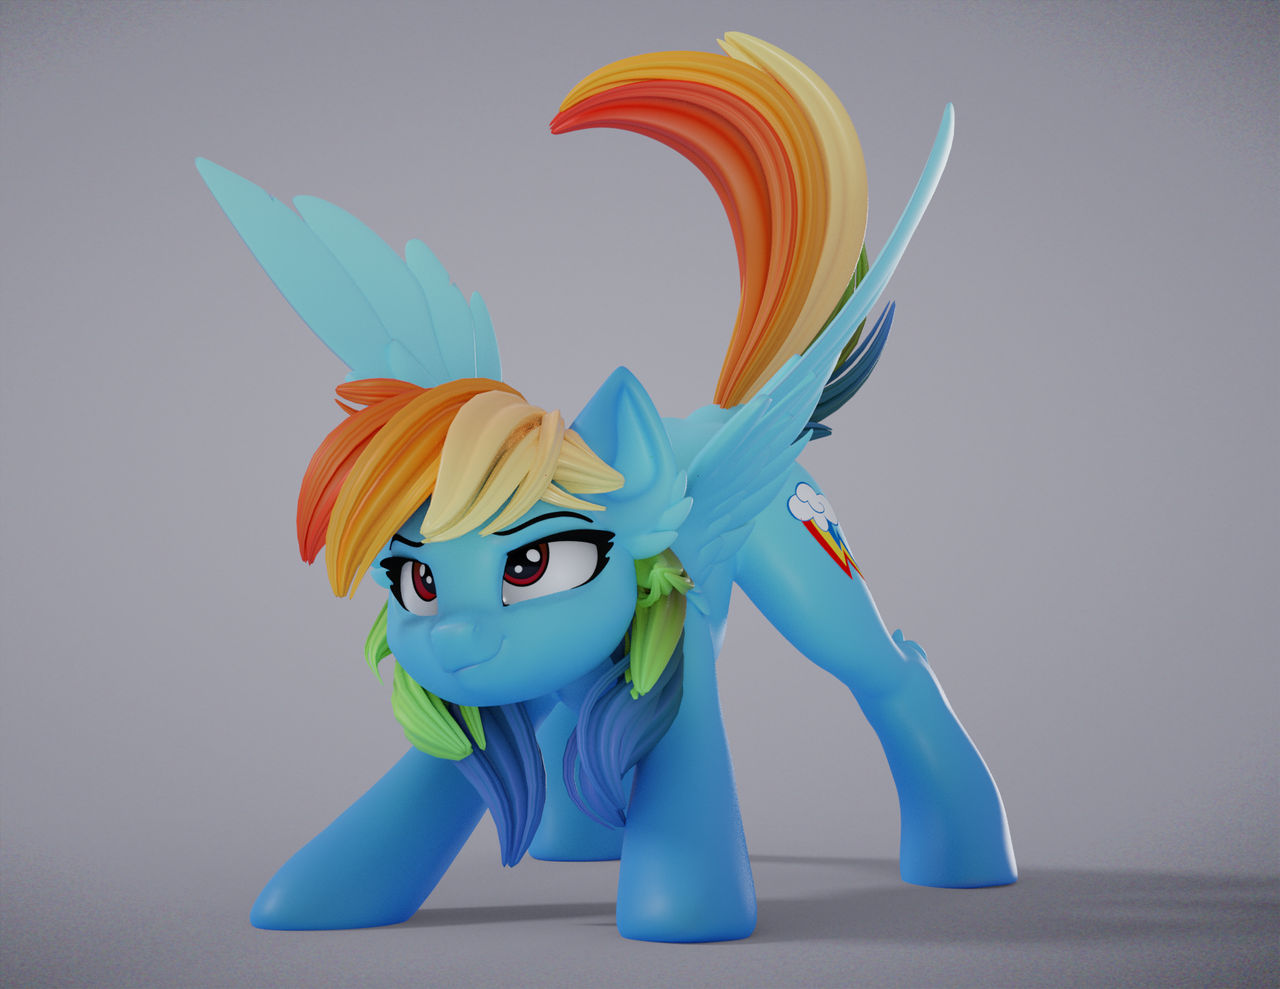 rainbow_dash_by_v747_ddao9rx-fullview.jp